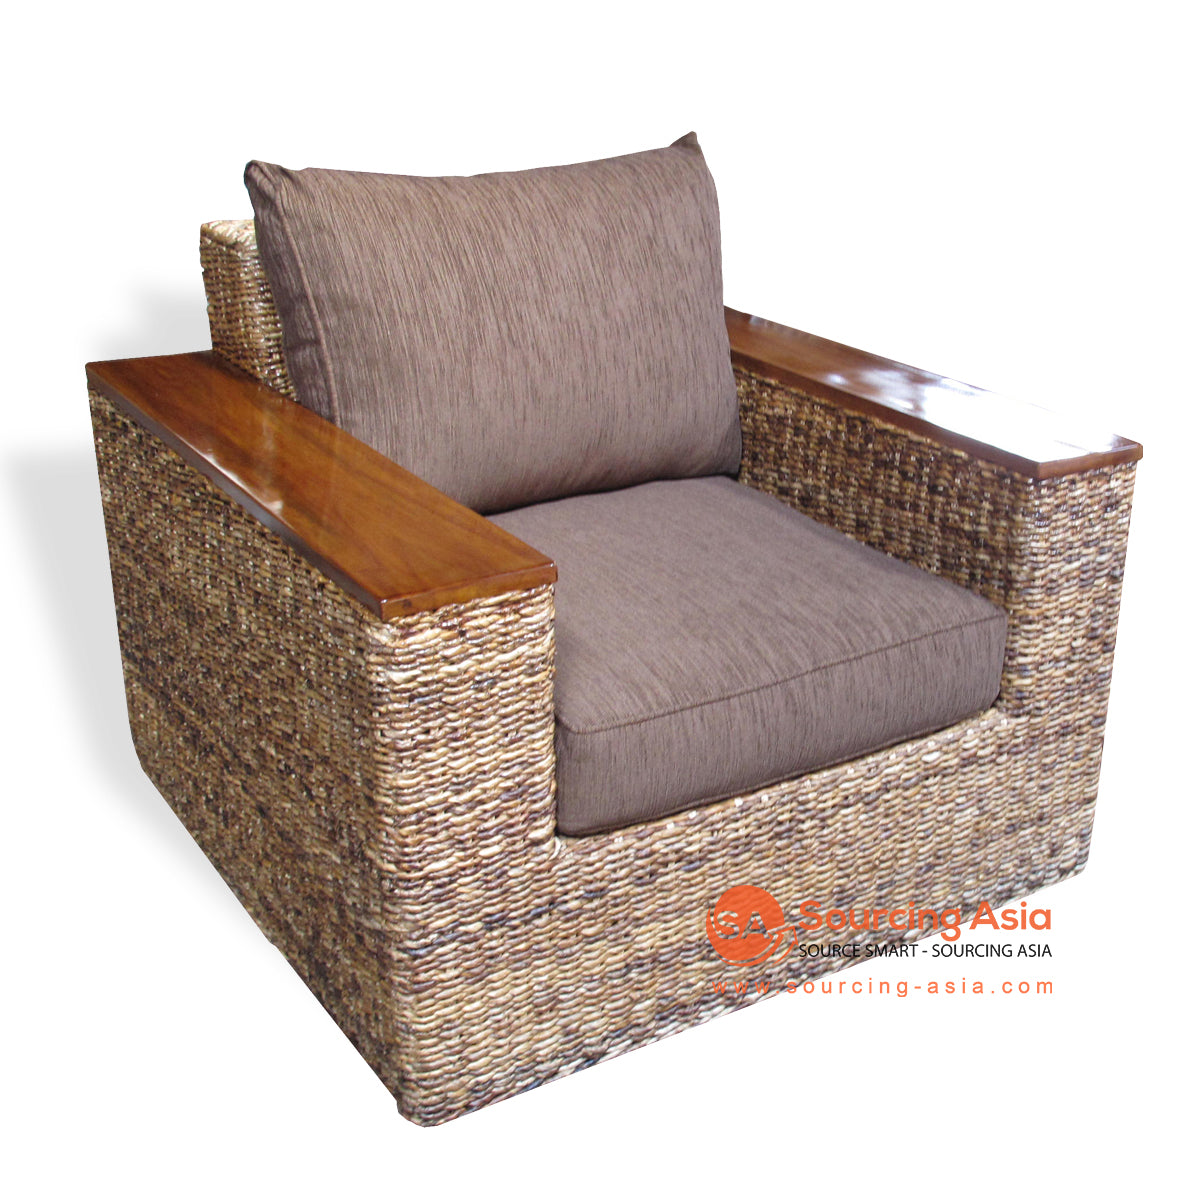 SF31-NAT SINGLE SEAT SOFA WITH WOODEN ARMS